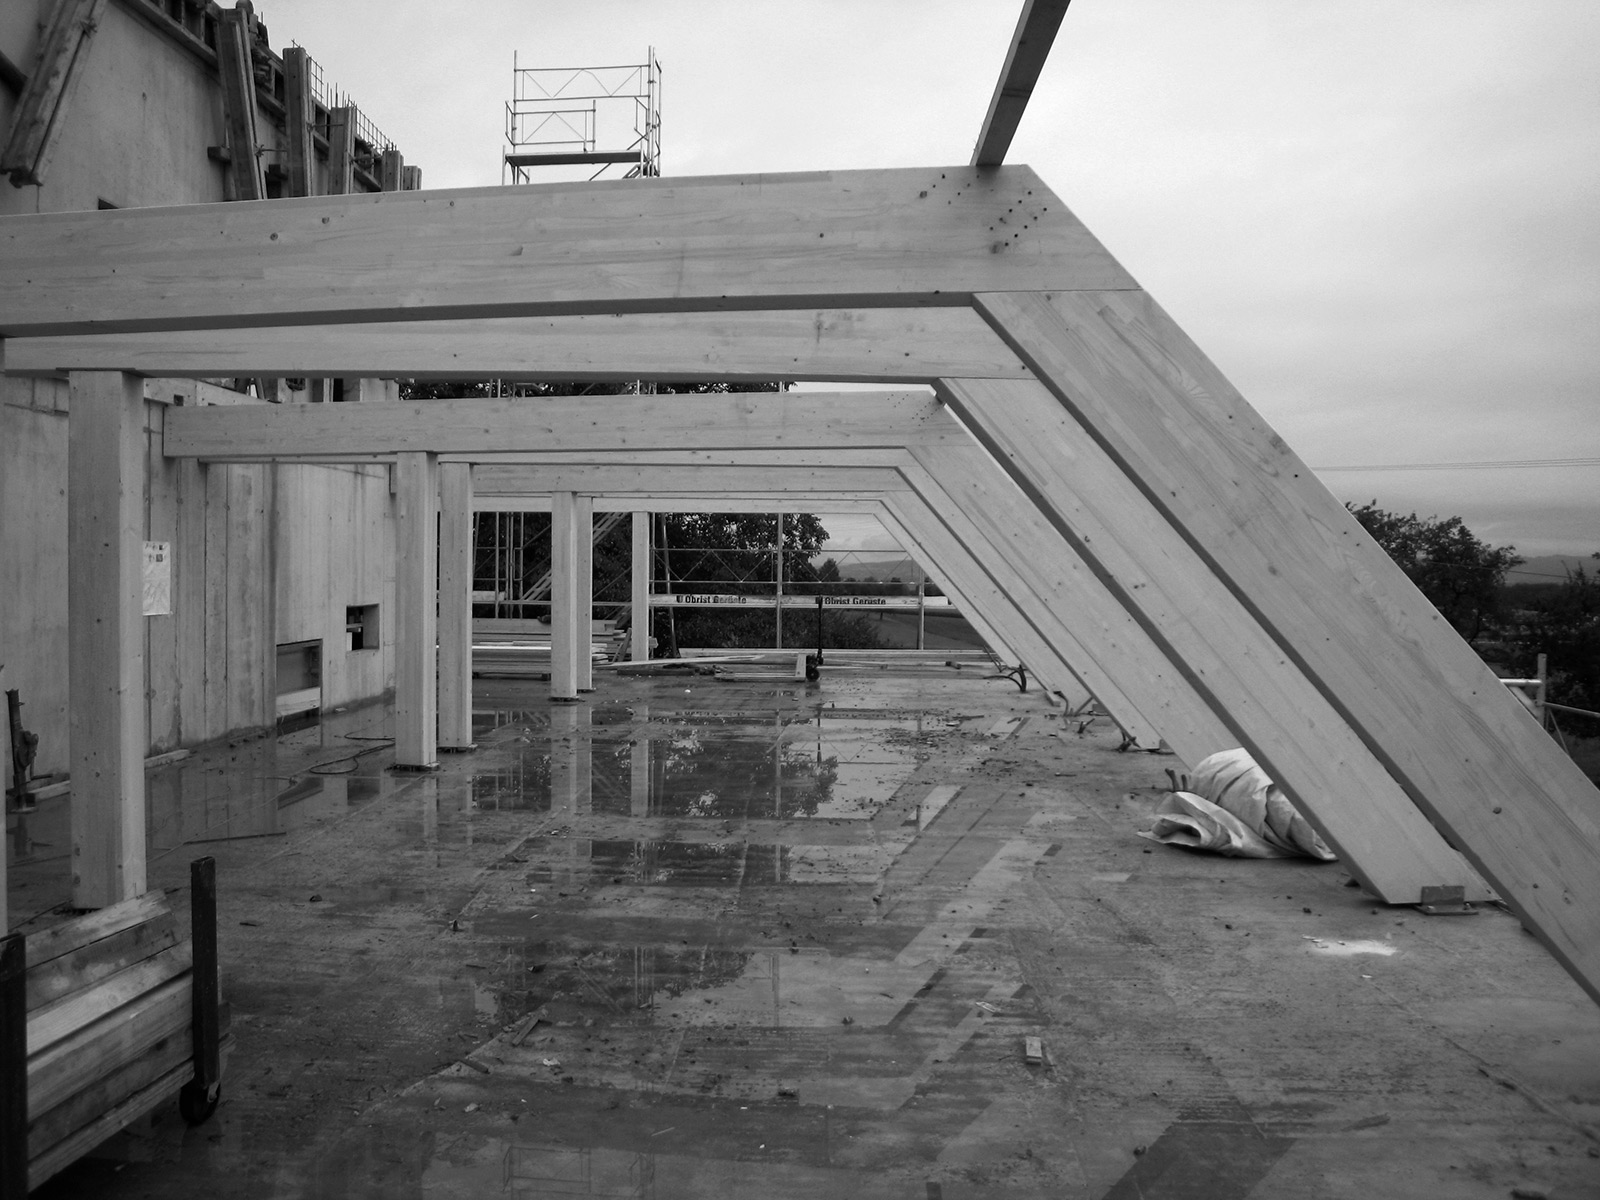 wiggwil farm, roof construction